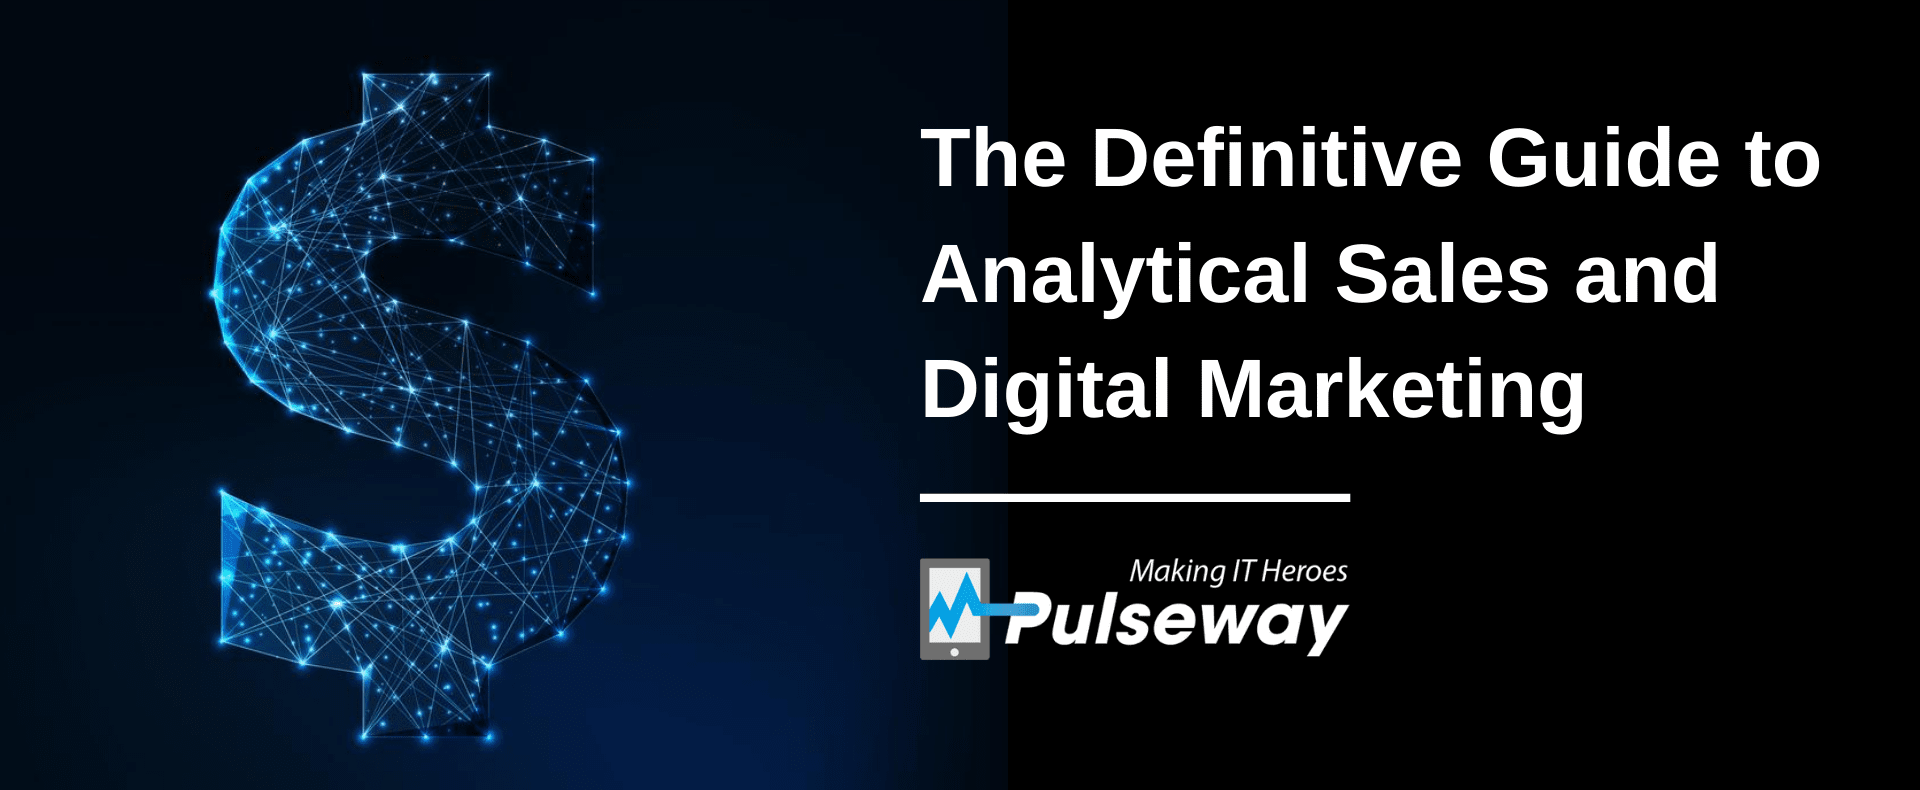 The Definitive Guide to Analytical Sales and Digital Marketing